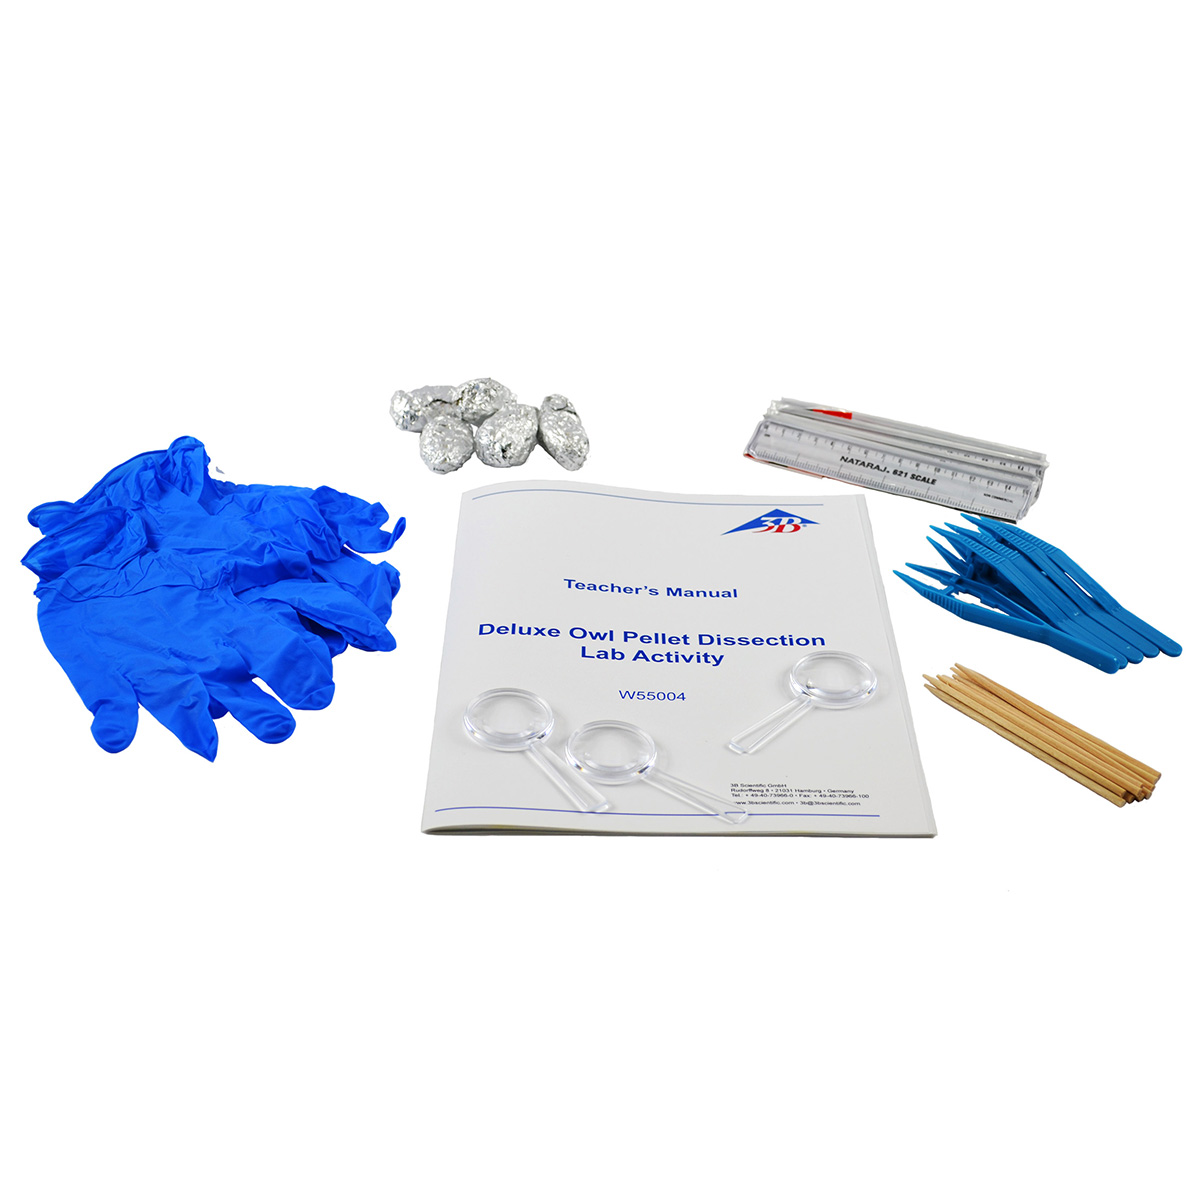 Deluxe Owl Pellet Dissection Lab Activity